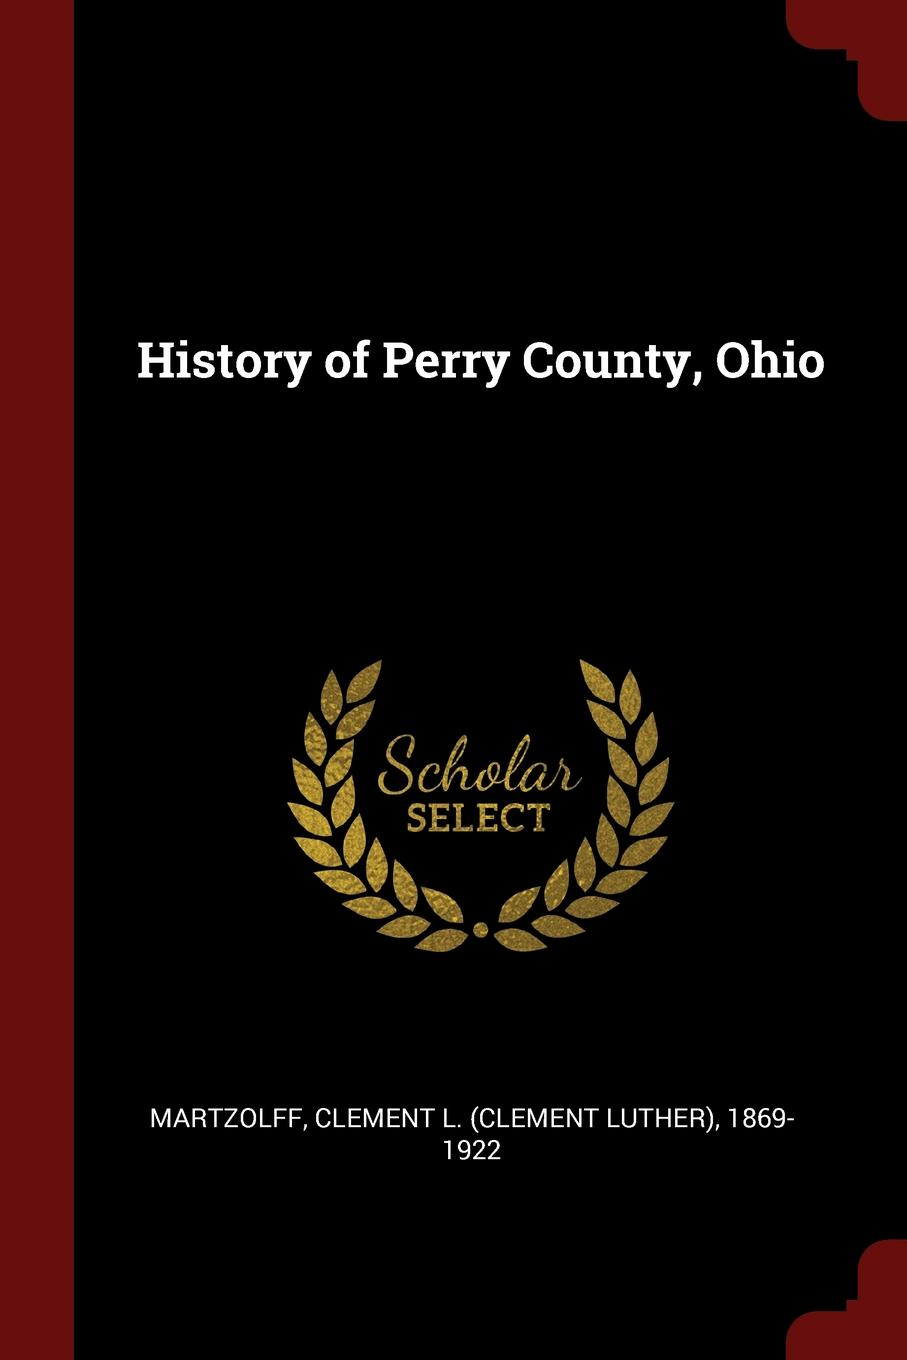 History of Perry County, Ohio